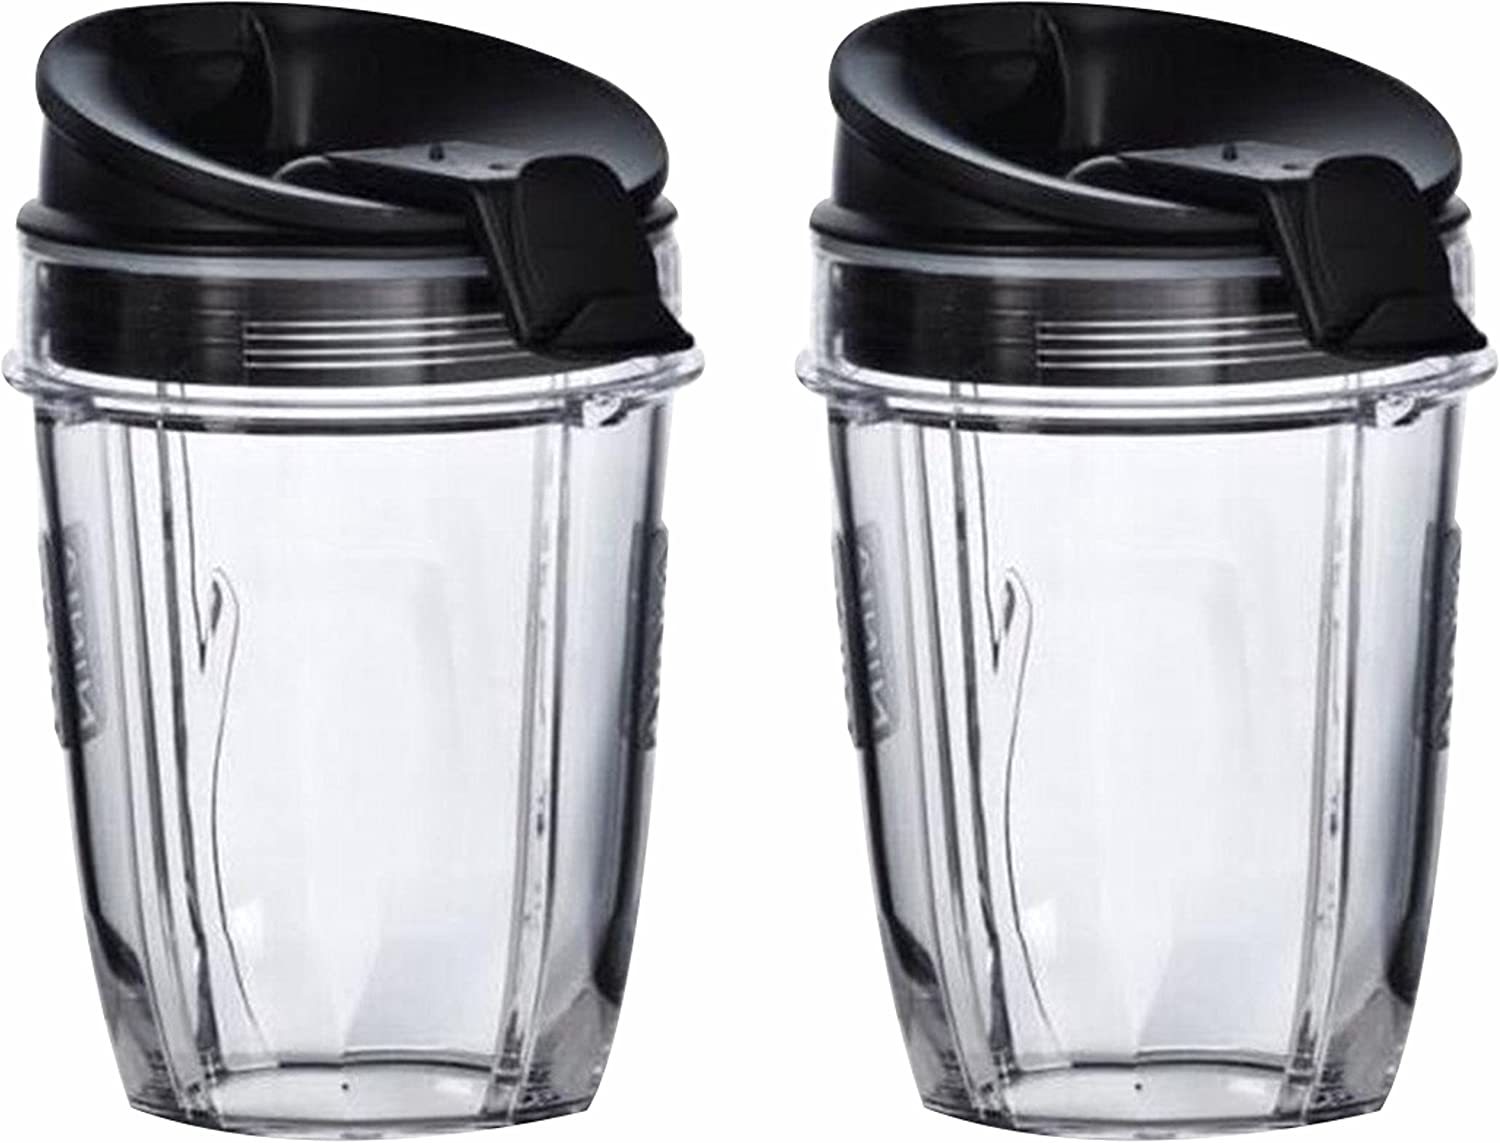 Nutri Ninja Cups   18-Once Tritan Cups with Sip & Seal Lids. Compatible with BL480, BL490, BL640, & BL680 Auto IQ Series Blenders (Pack of 2)